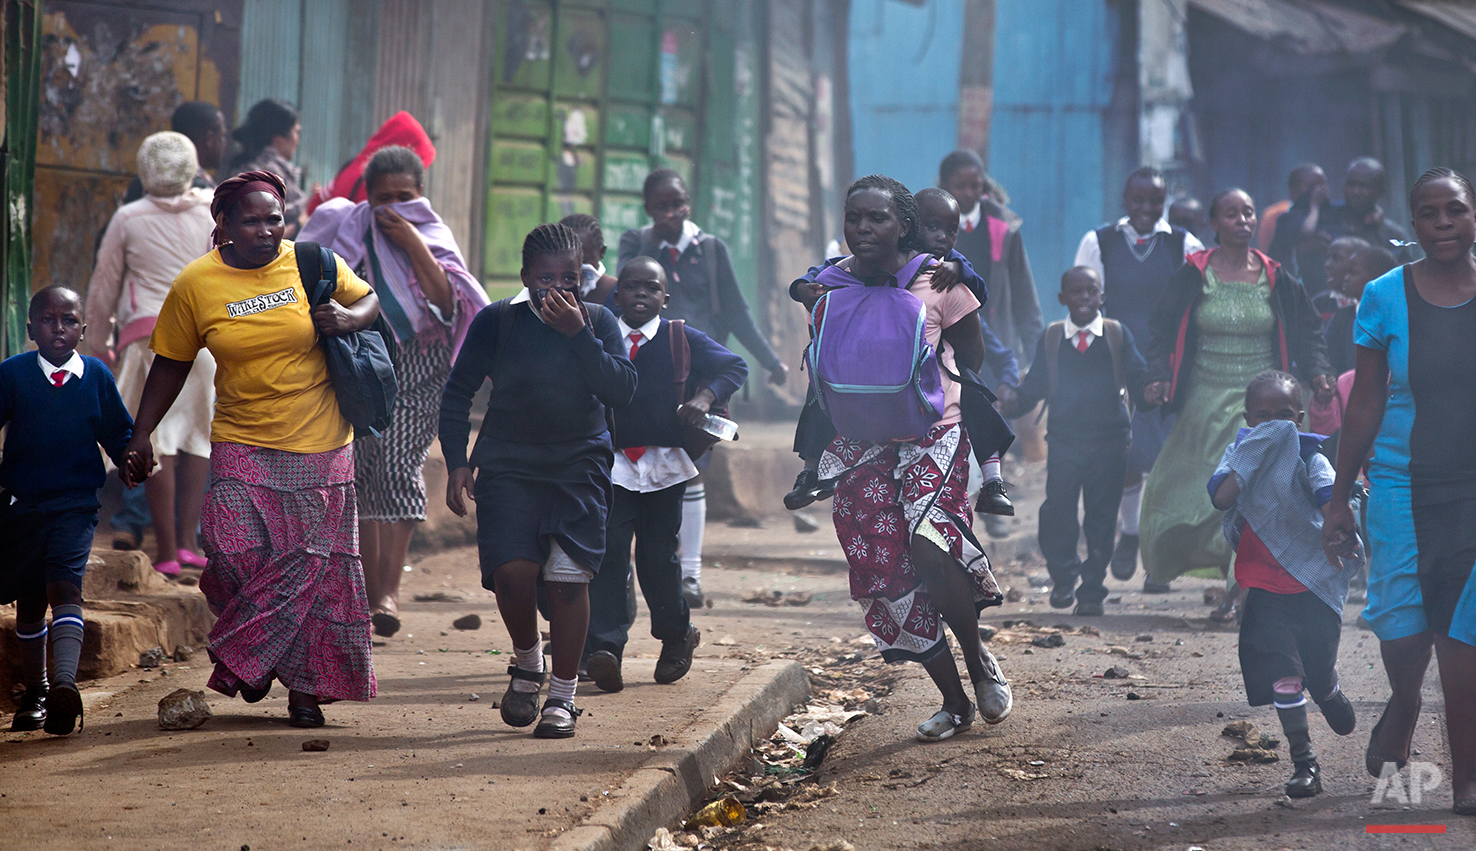 Women and schoolchildren take advantage of a lull in the clashes to run to safety, as police firing tear gas engage protesters throwing rocks in the Kibera slum of Nairobi, Kenya Monday, May 23, 2016. Kenya's police shot, beat and tear gassed opposition demonstrators across the country who tried to gather to call for the electoral commission to be dissolved due to allegations of bias and corruption. (AP Photo/Ben Curtis)